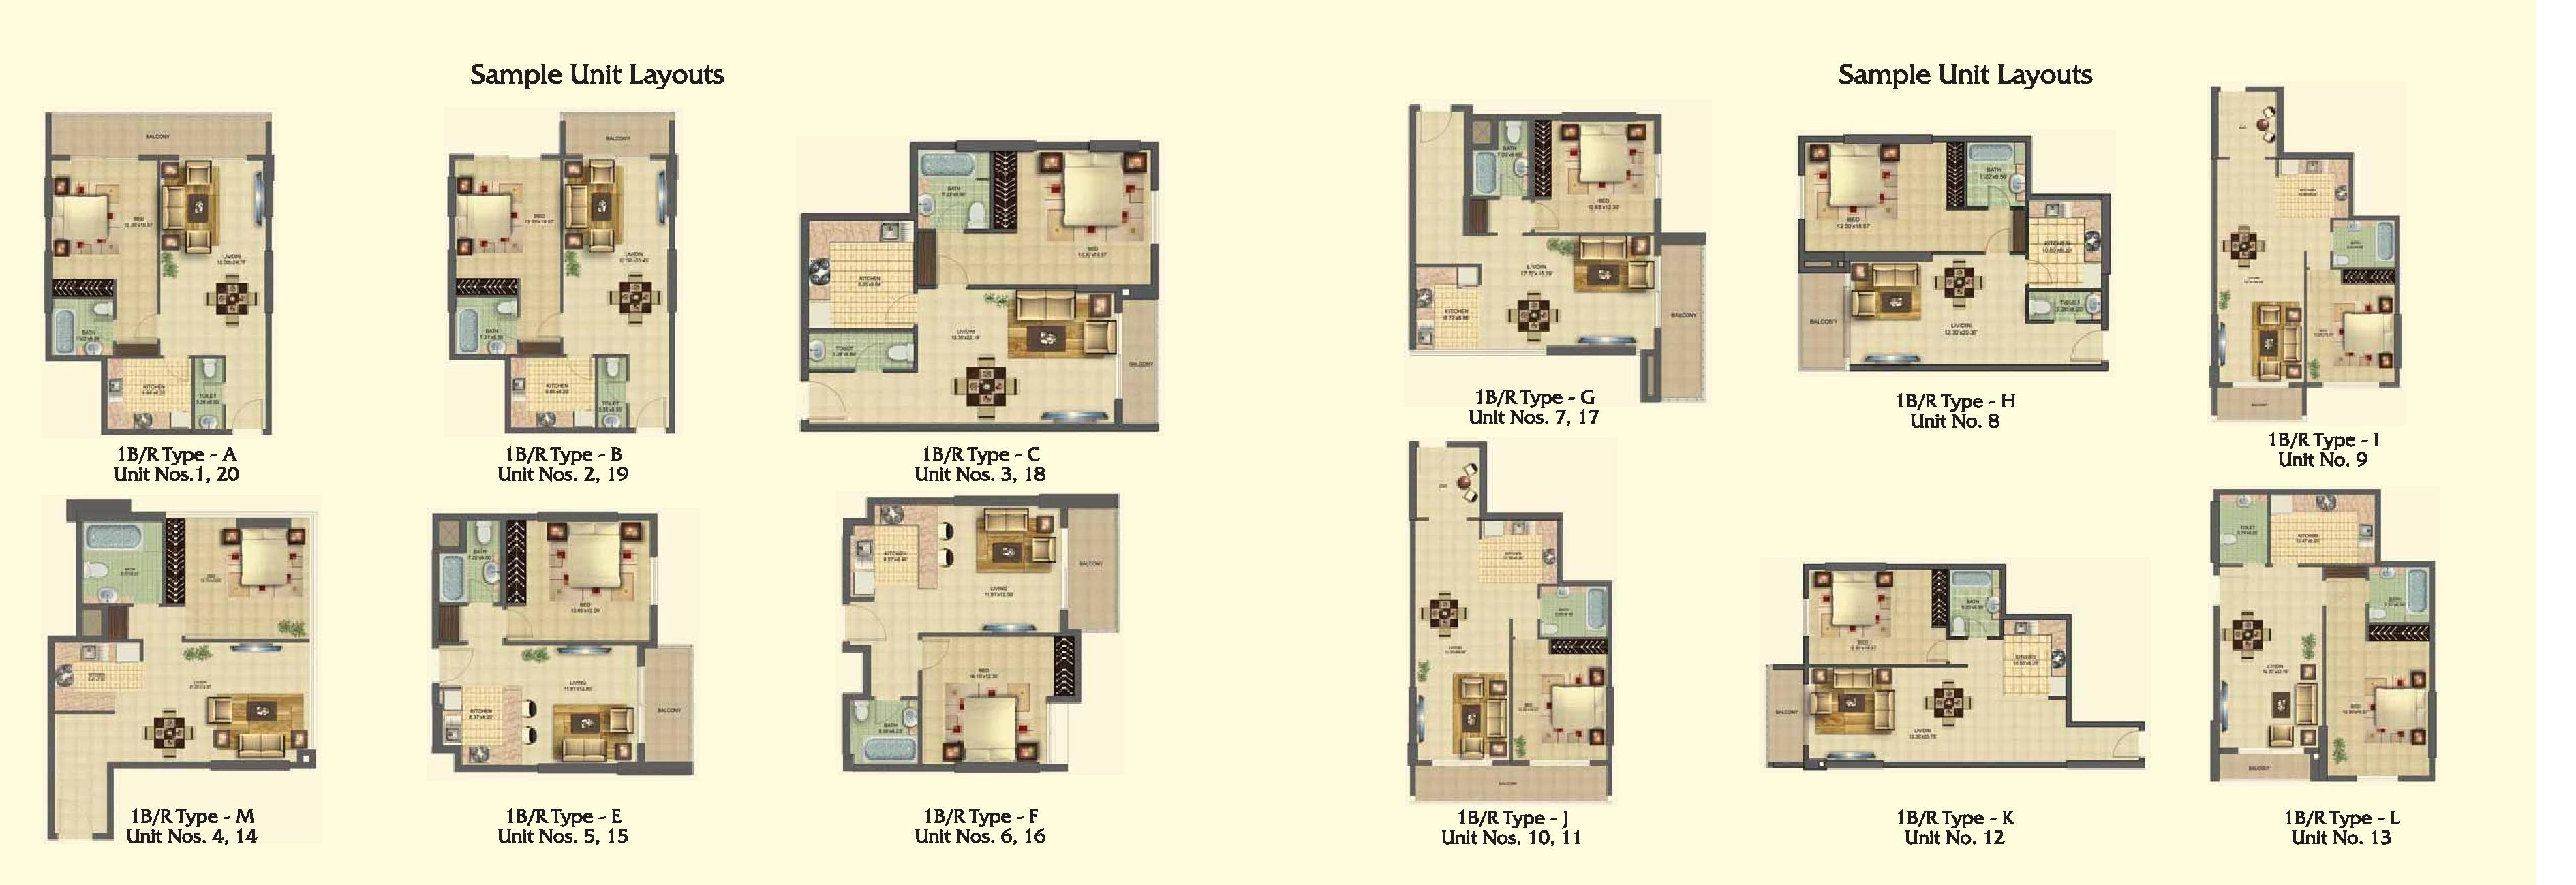 Ruby residence floor plans dubai silicon oasis ruby residence floor plans dubai silicon oasis jameslax Images